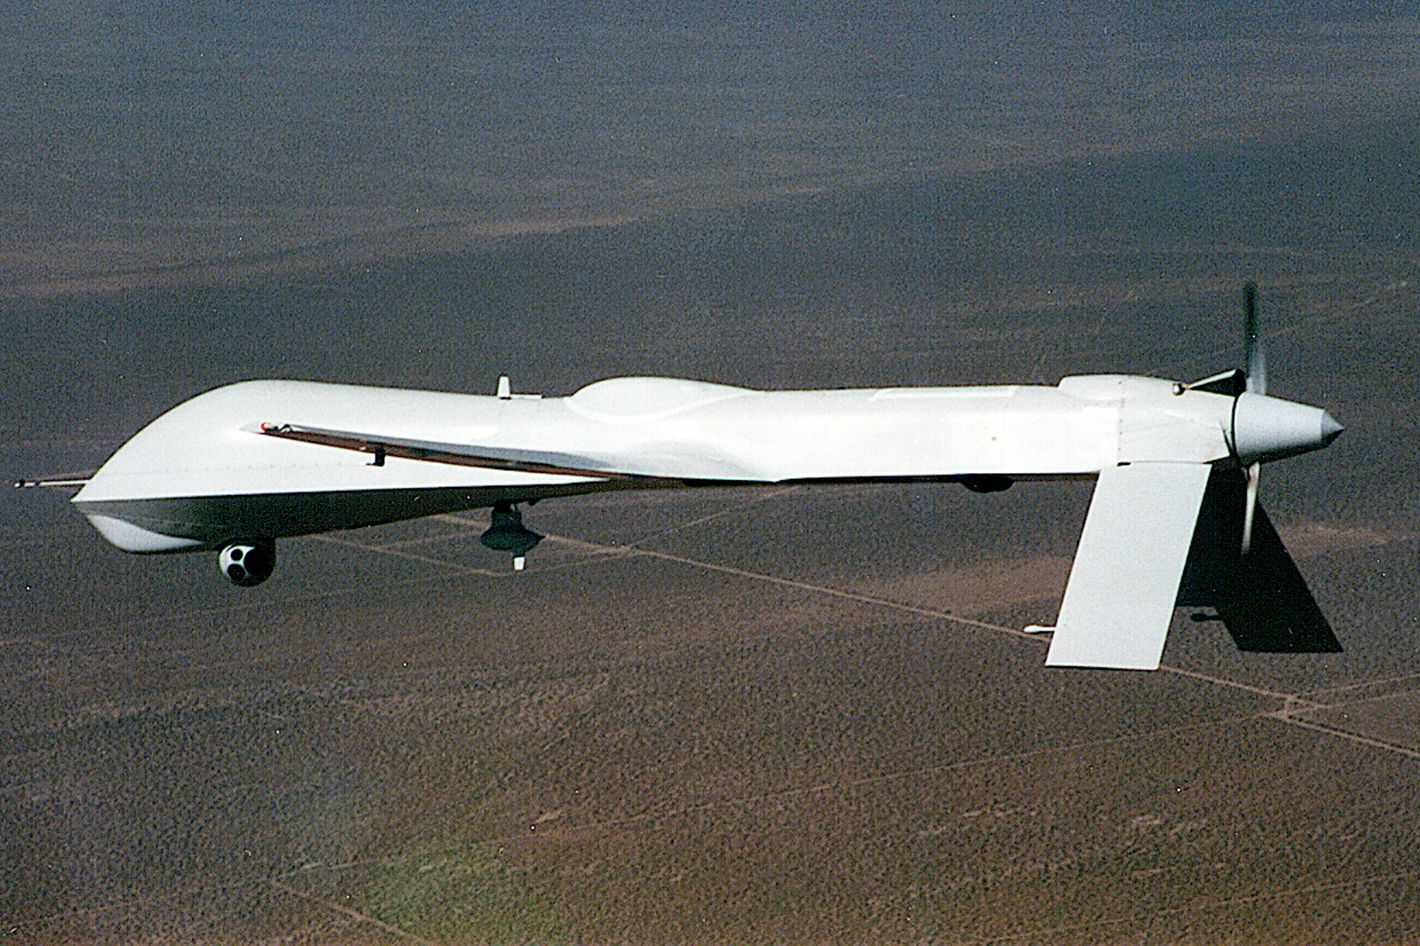 """The MQ """"Predator"""" drone or Unmanned Aerial Vehicle (UAV) is shown in this undated handout photo from the aircraft's manufacturer, General Atomics. General Atomics explains that the previous """"RQ"""" designation for this vehicle has recently been changed to """"MQ"""" to reflect the aircrafts multi-functional capabilities. The new designation moves the Predator from a strictly reconnaissance role, to an ability to carry and fire weapons such as the """"Hellfire"""" missile."""